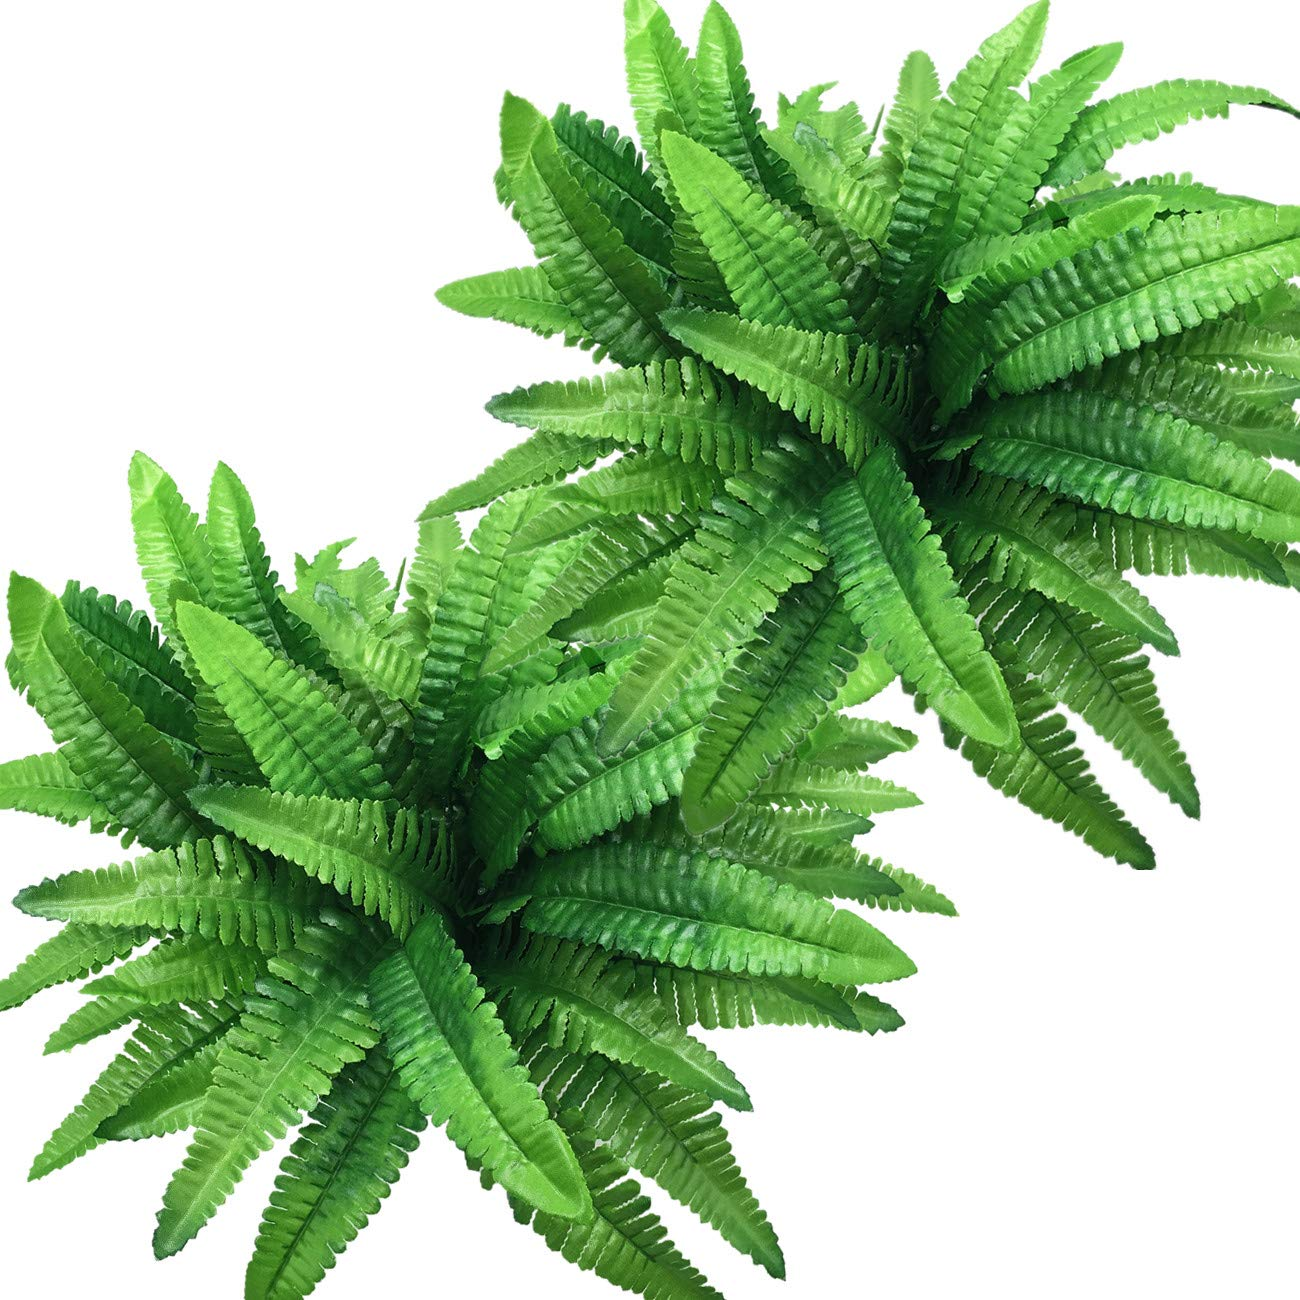 Plastic Fern Leaves Persian Grass Fake Plants Wedding Indoor Outdoor Home Garden Verandah Kitchen Office Table Centerpieces Arrangements Christmas Decoration 2 pcs CATTREE Artificial Shrubs Bushes